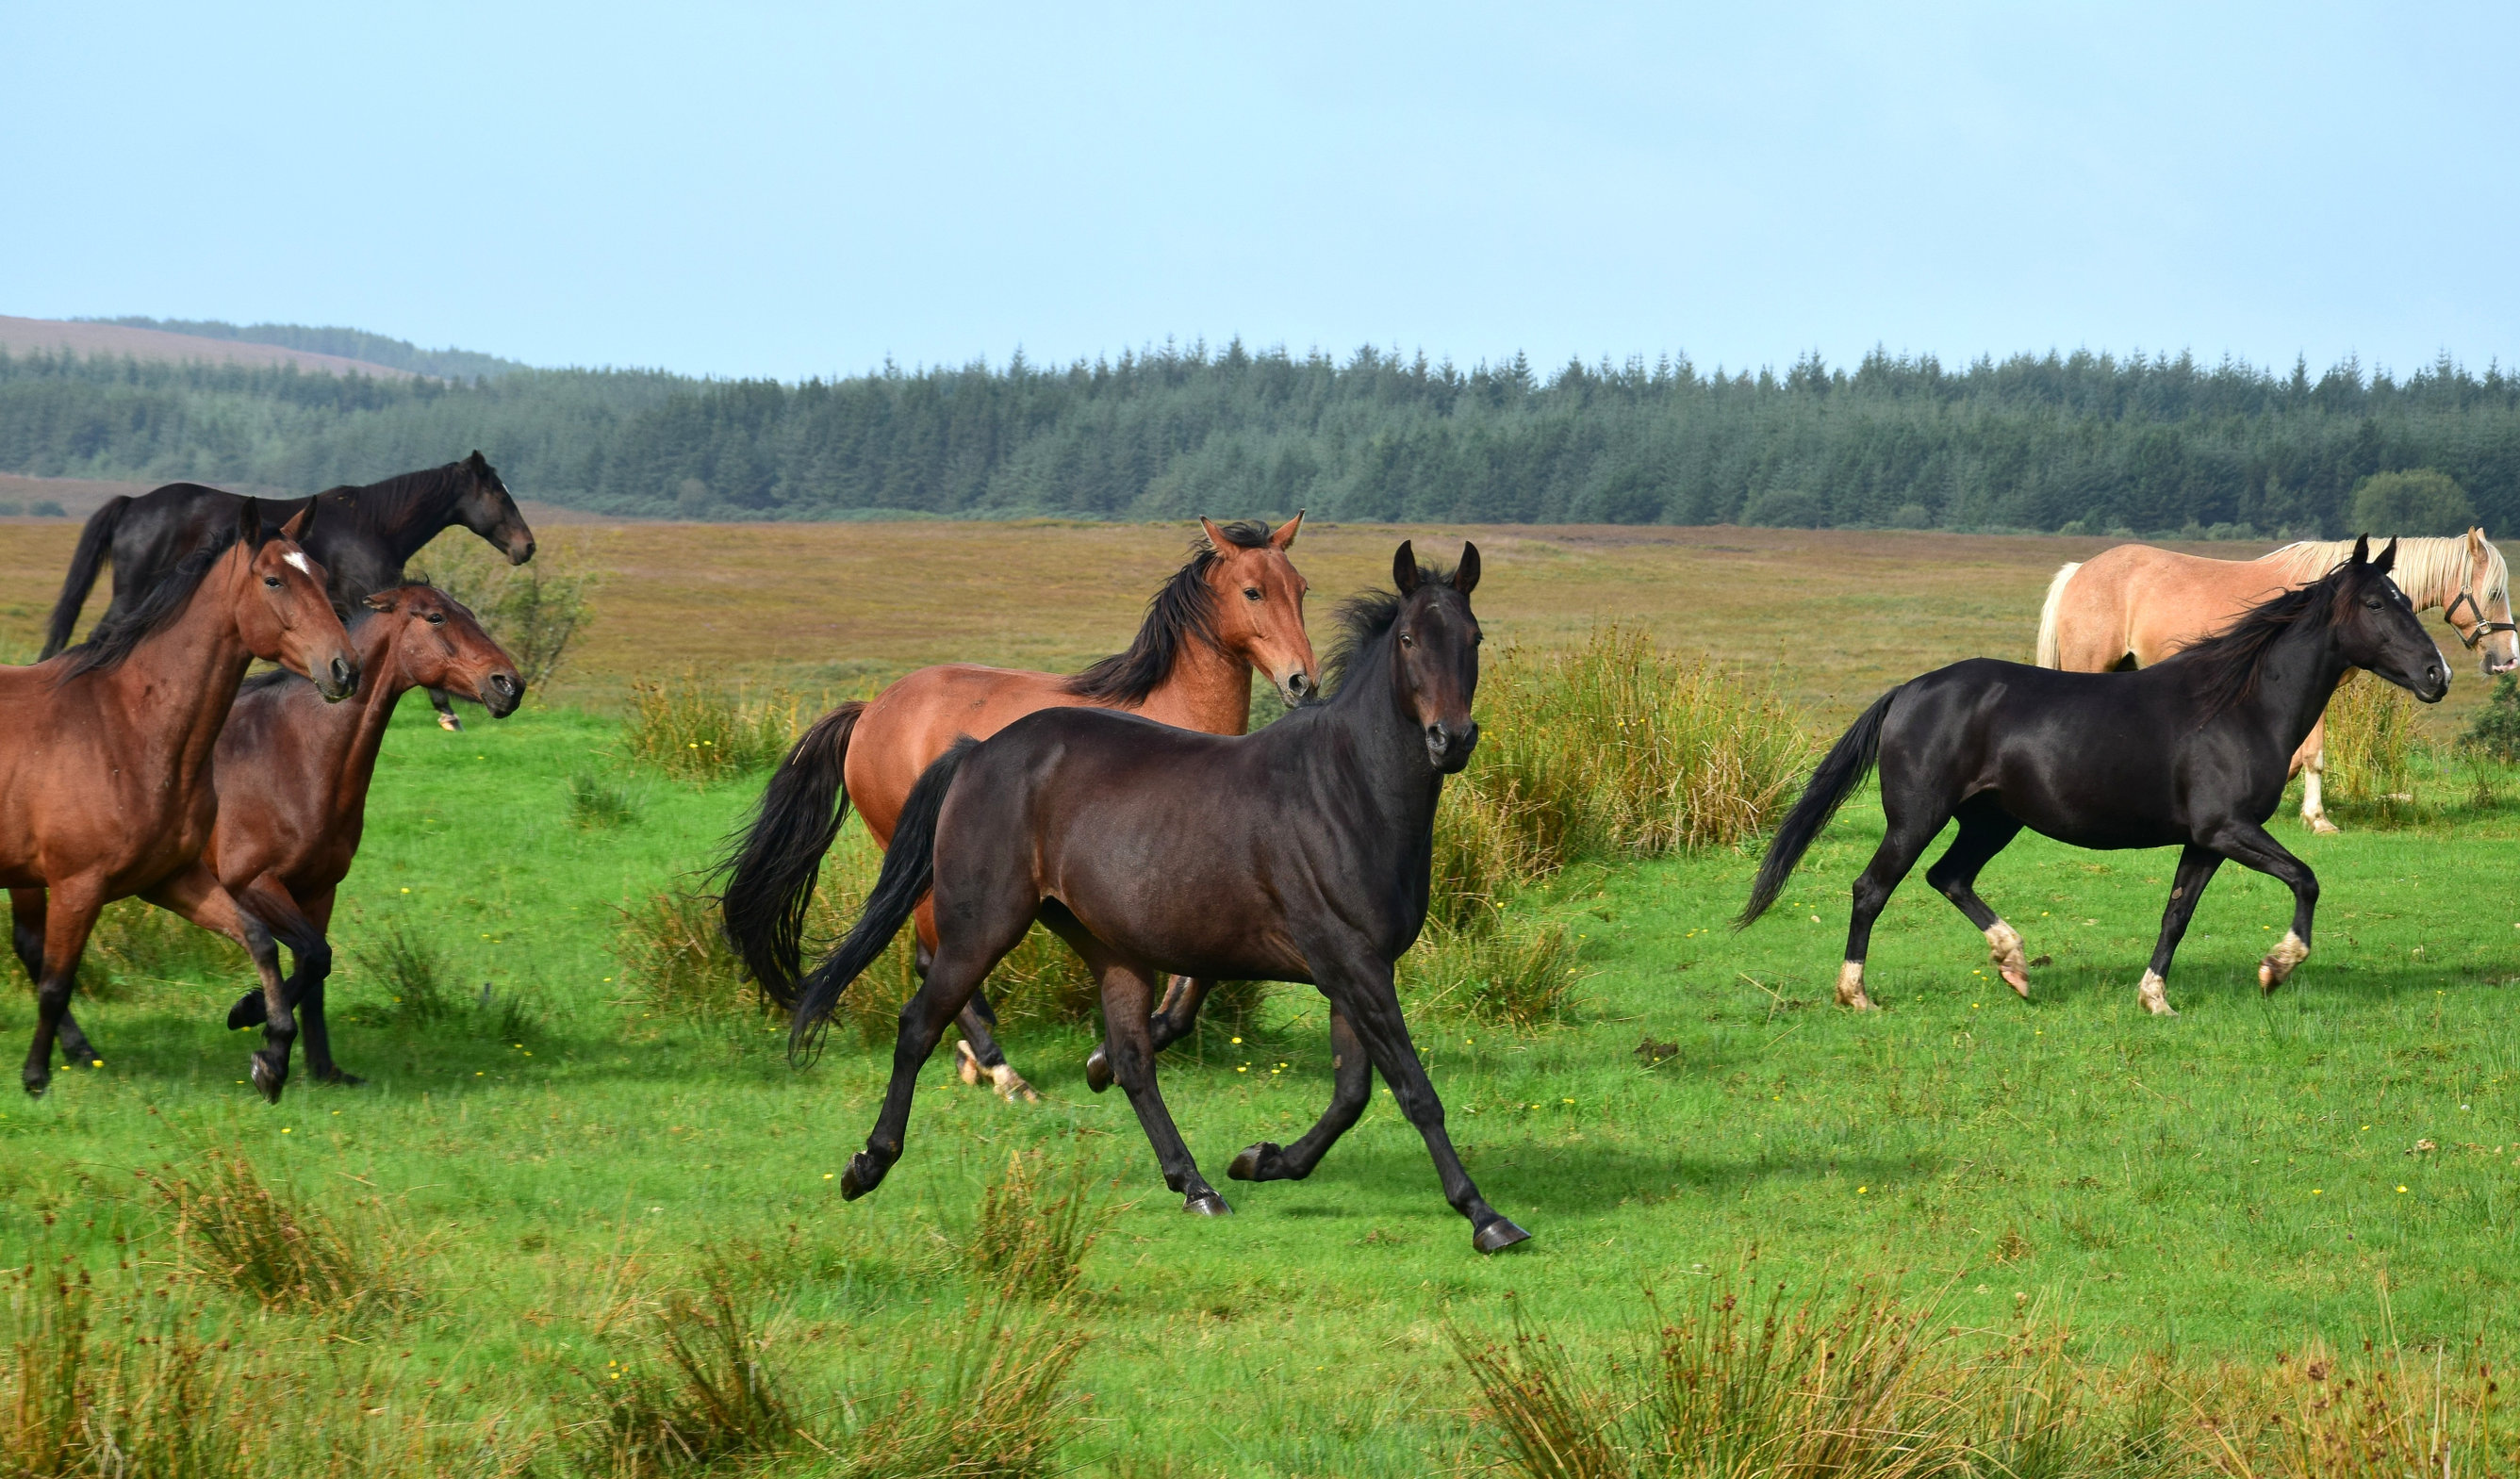 A group of horses in a field.